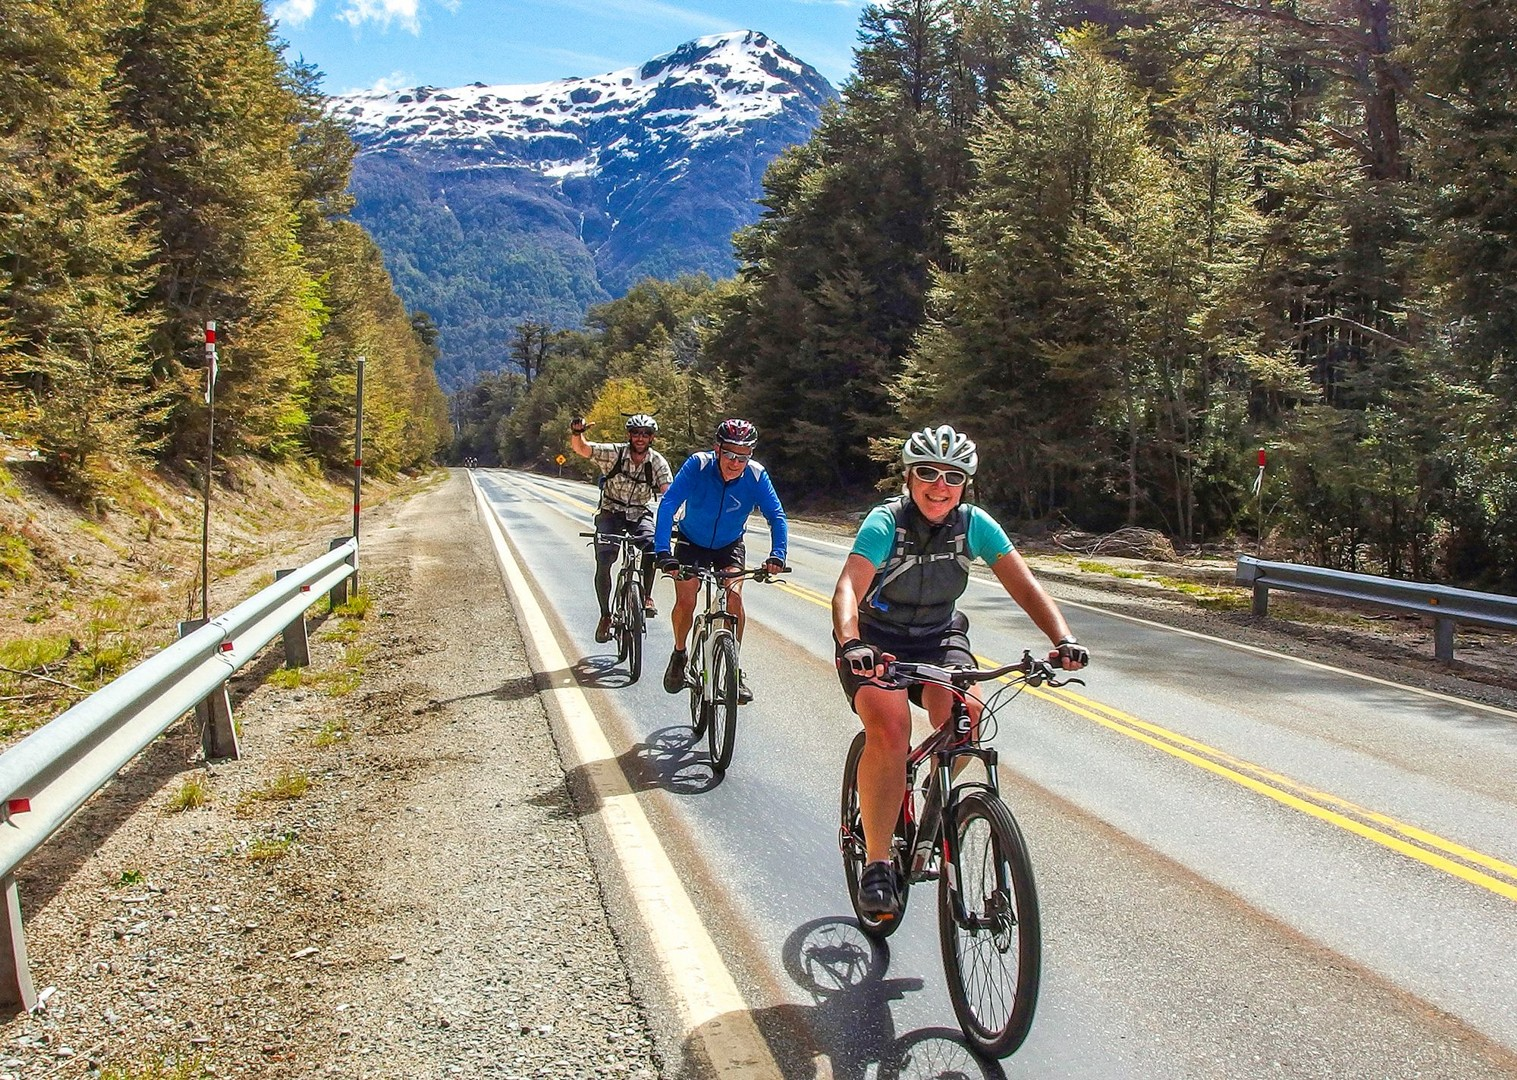 cyclingadventurechile4.jpg - Chile and Argentina - Lake District - Cycling Adventures